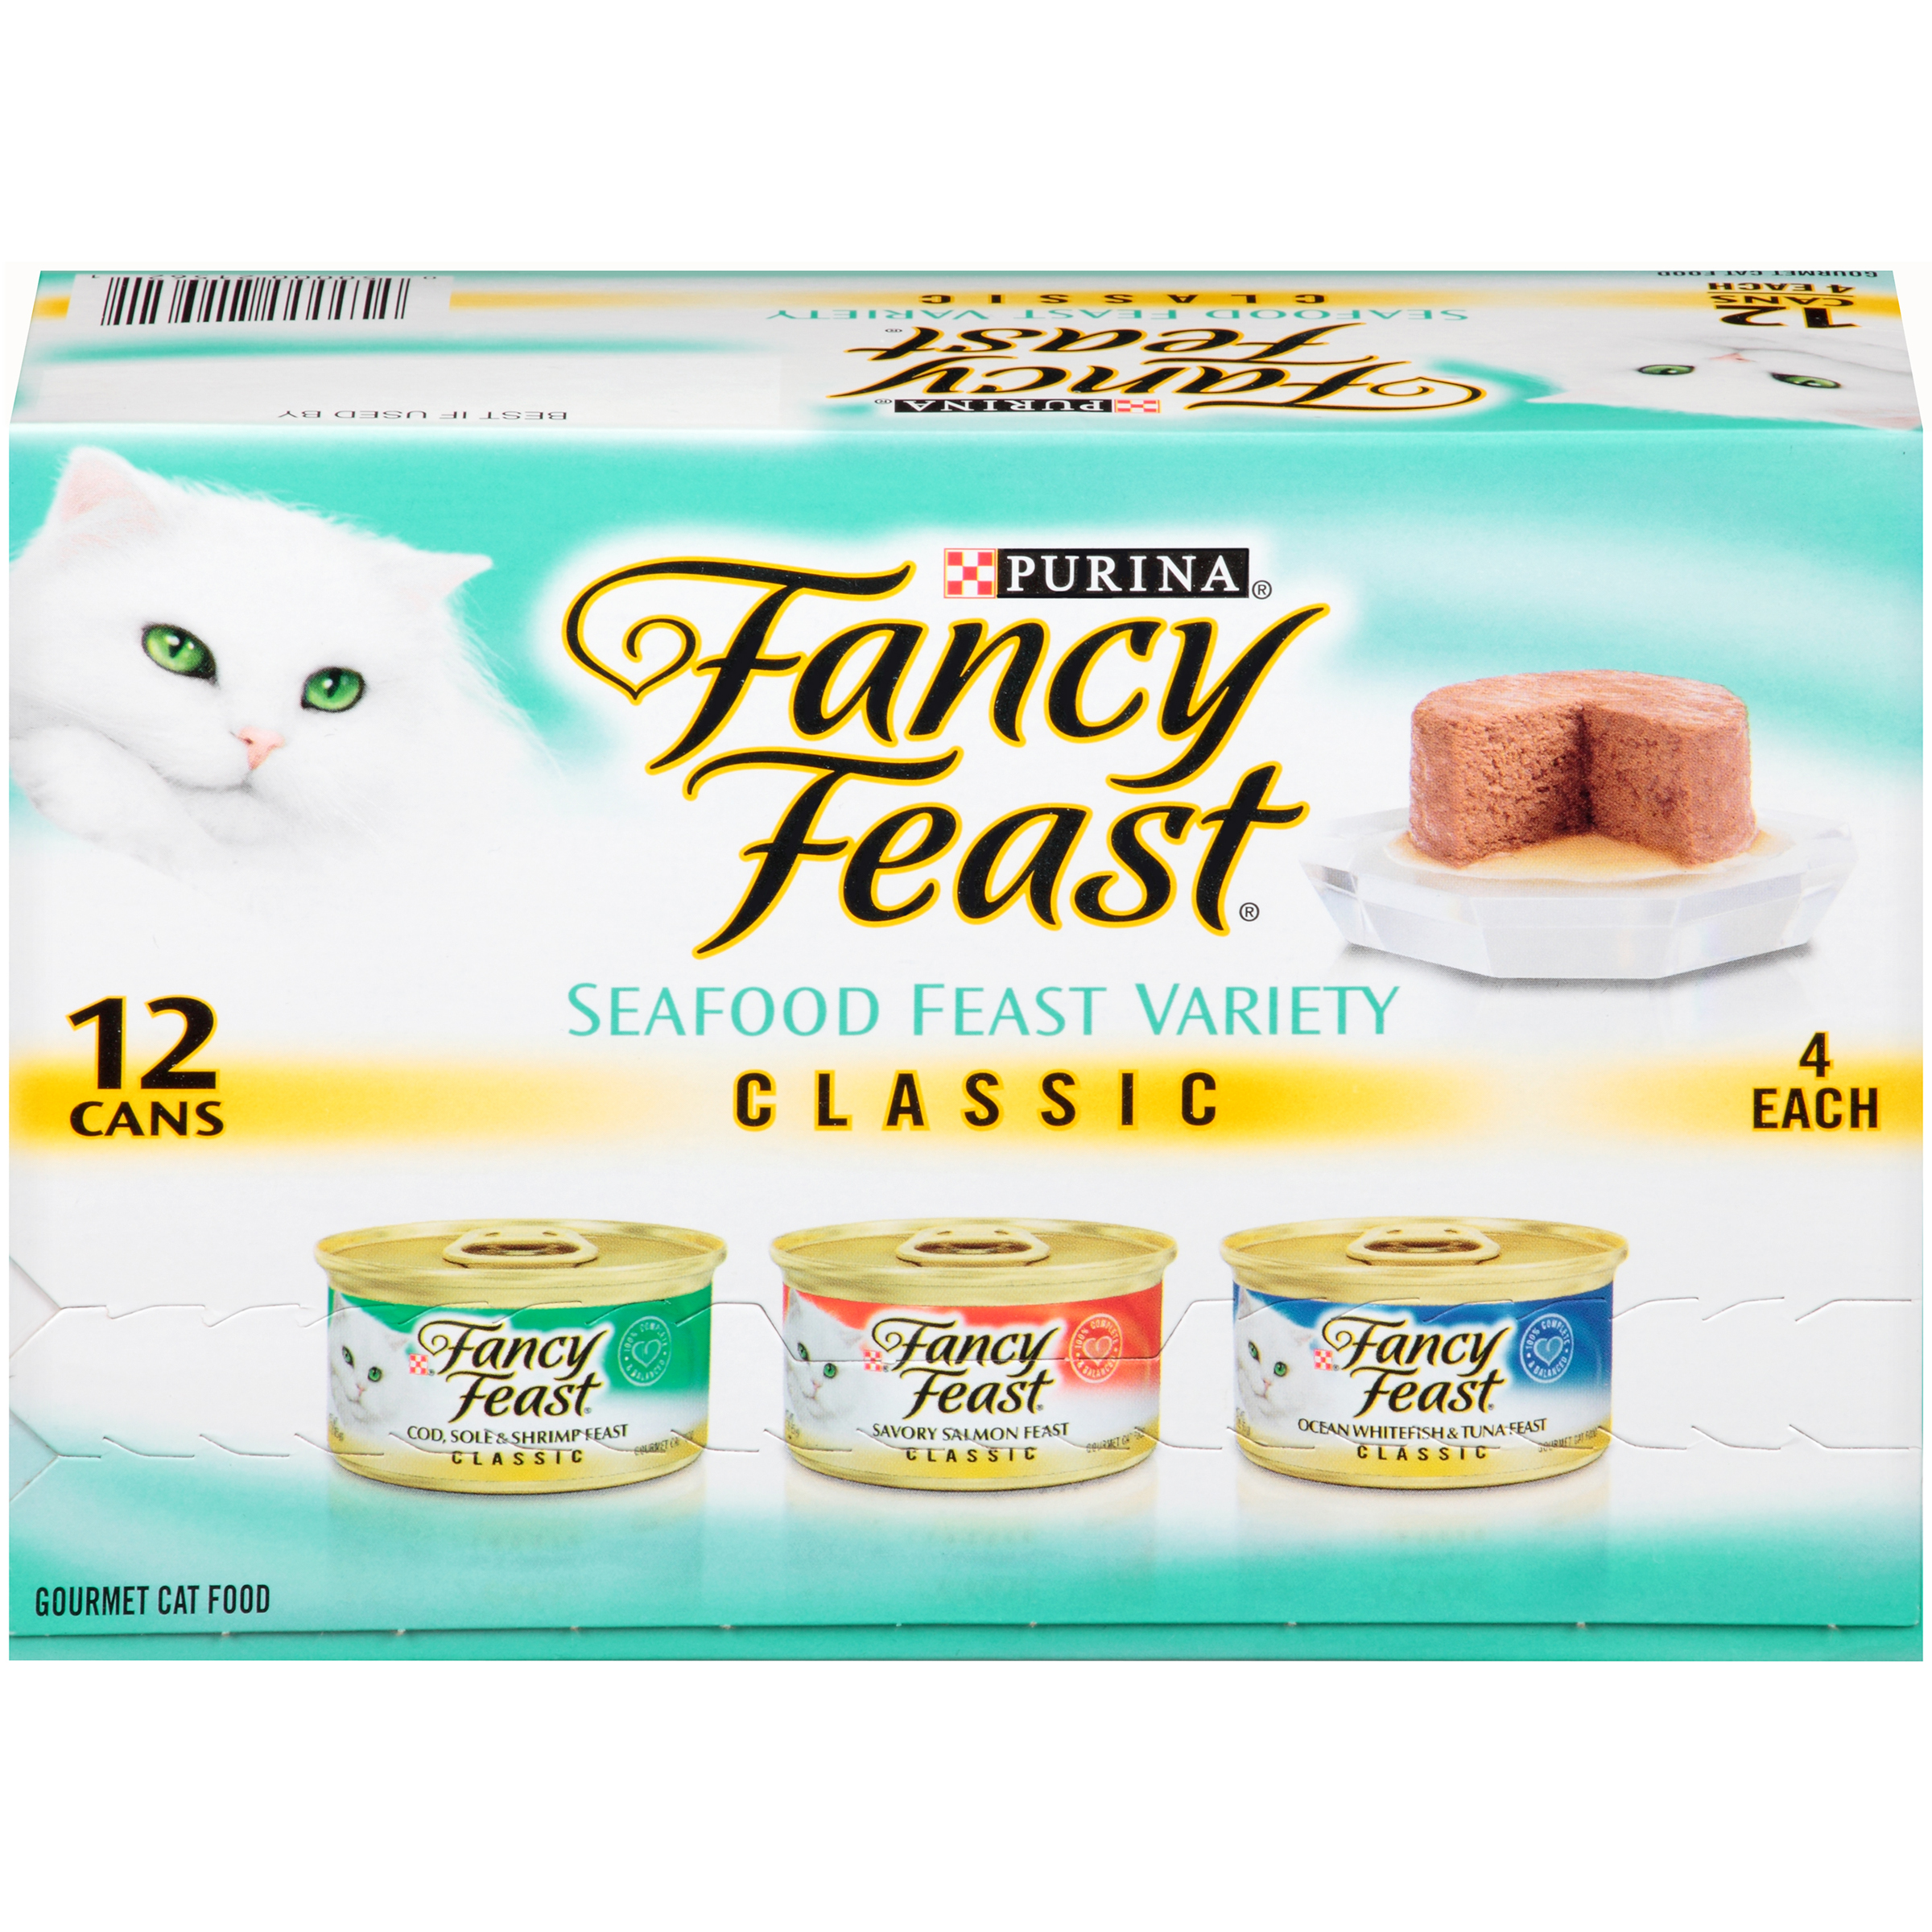 Purina Fancy Feast Classic Pat�� Seafood Feast Variety Cat Food 12-3 oz. Cans